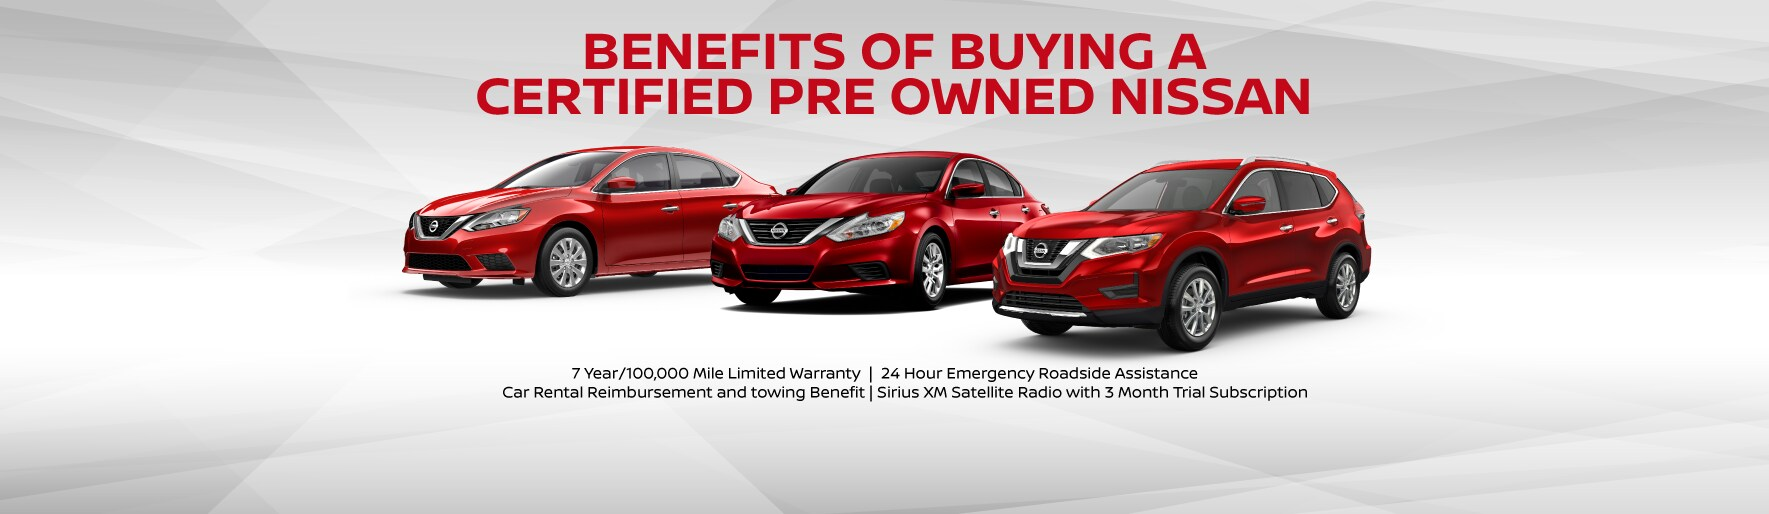 Vaden nissan of statesboro new used nissan dealership serving pooler swainsboro